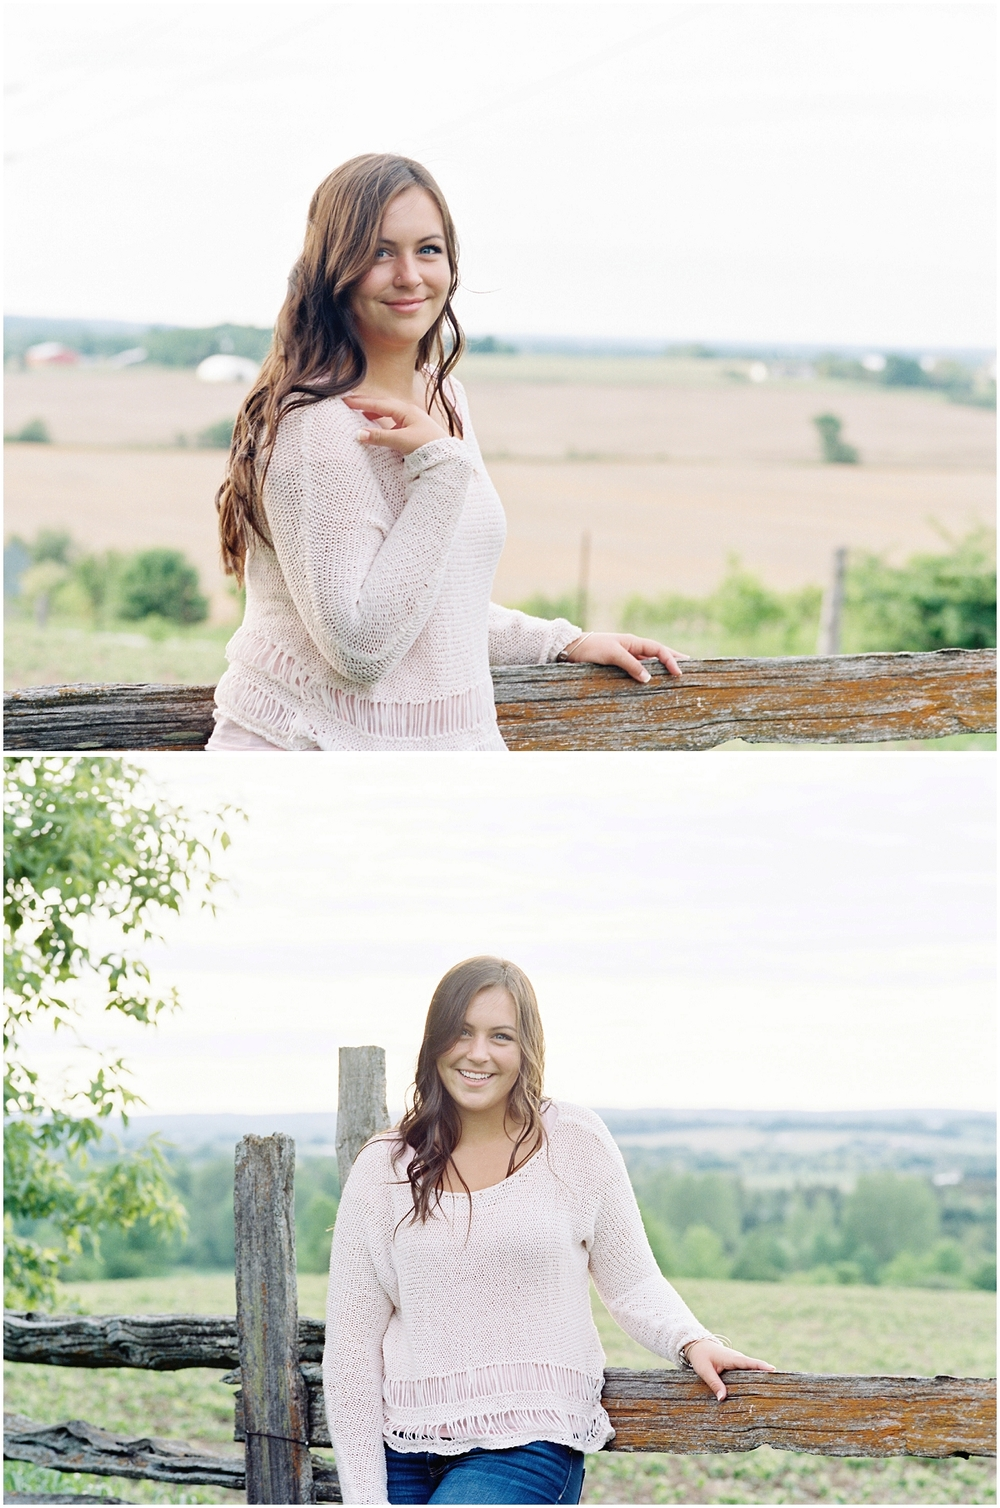 alliston senior photography Portra800226_Alliston-Tottenham-High-School-Senior Photography FIlm.jpg